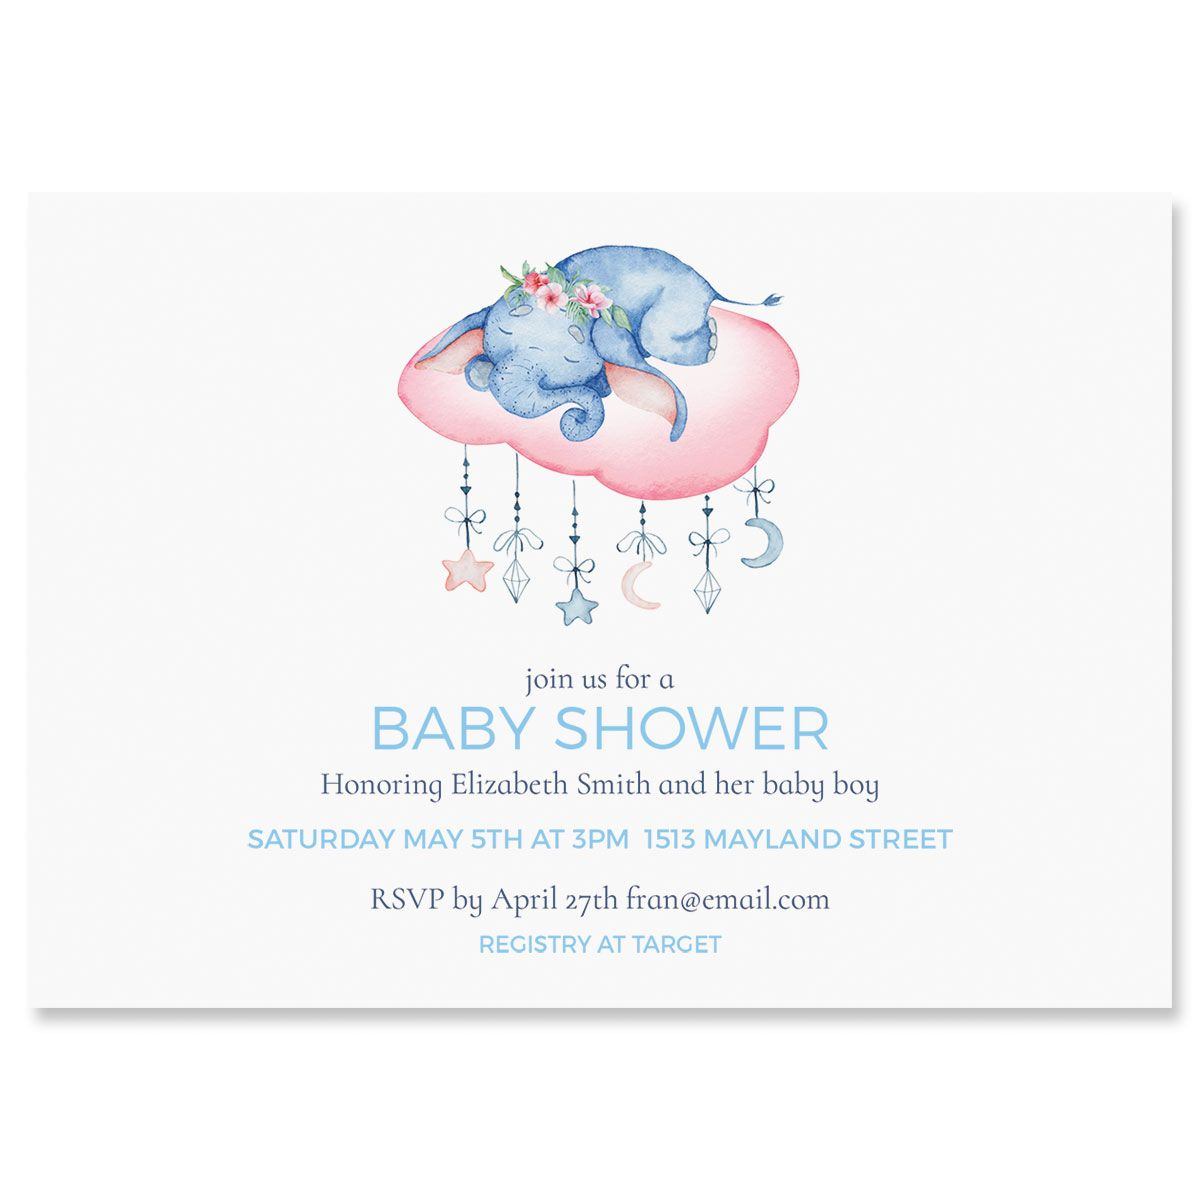 Sleepy Elephant Shower Invitations